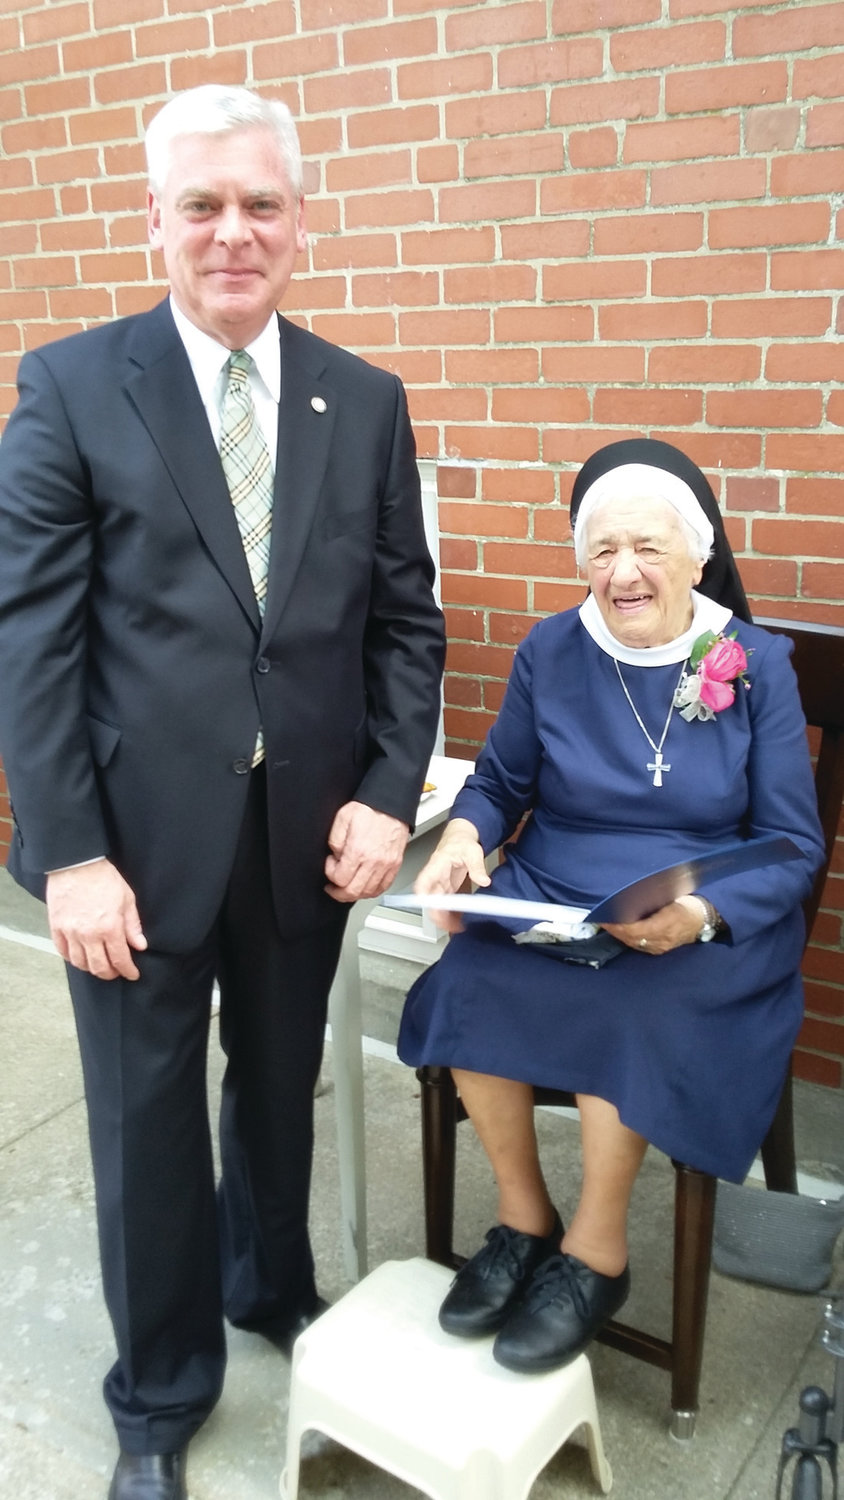 RECOGNITION: Scott Avedisian presents Sister Mary Angelus a citation in recognition of her work in this photo taken when he was mayor.